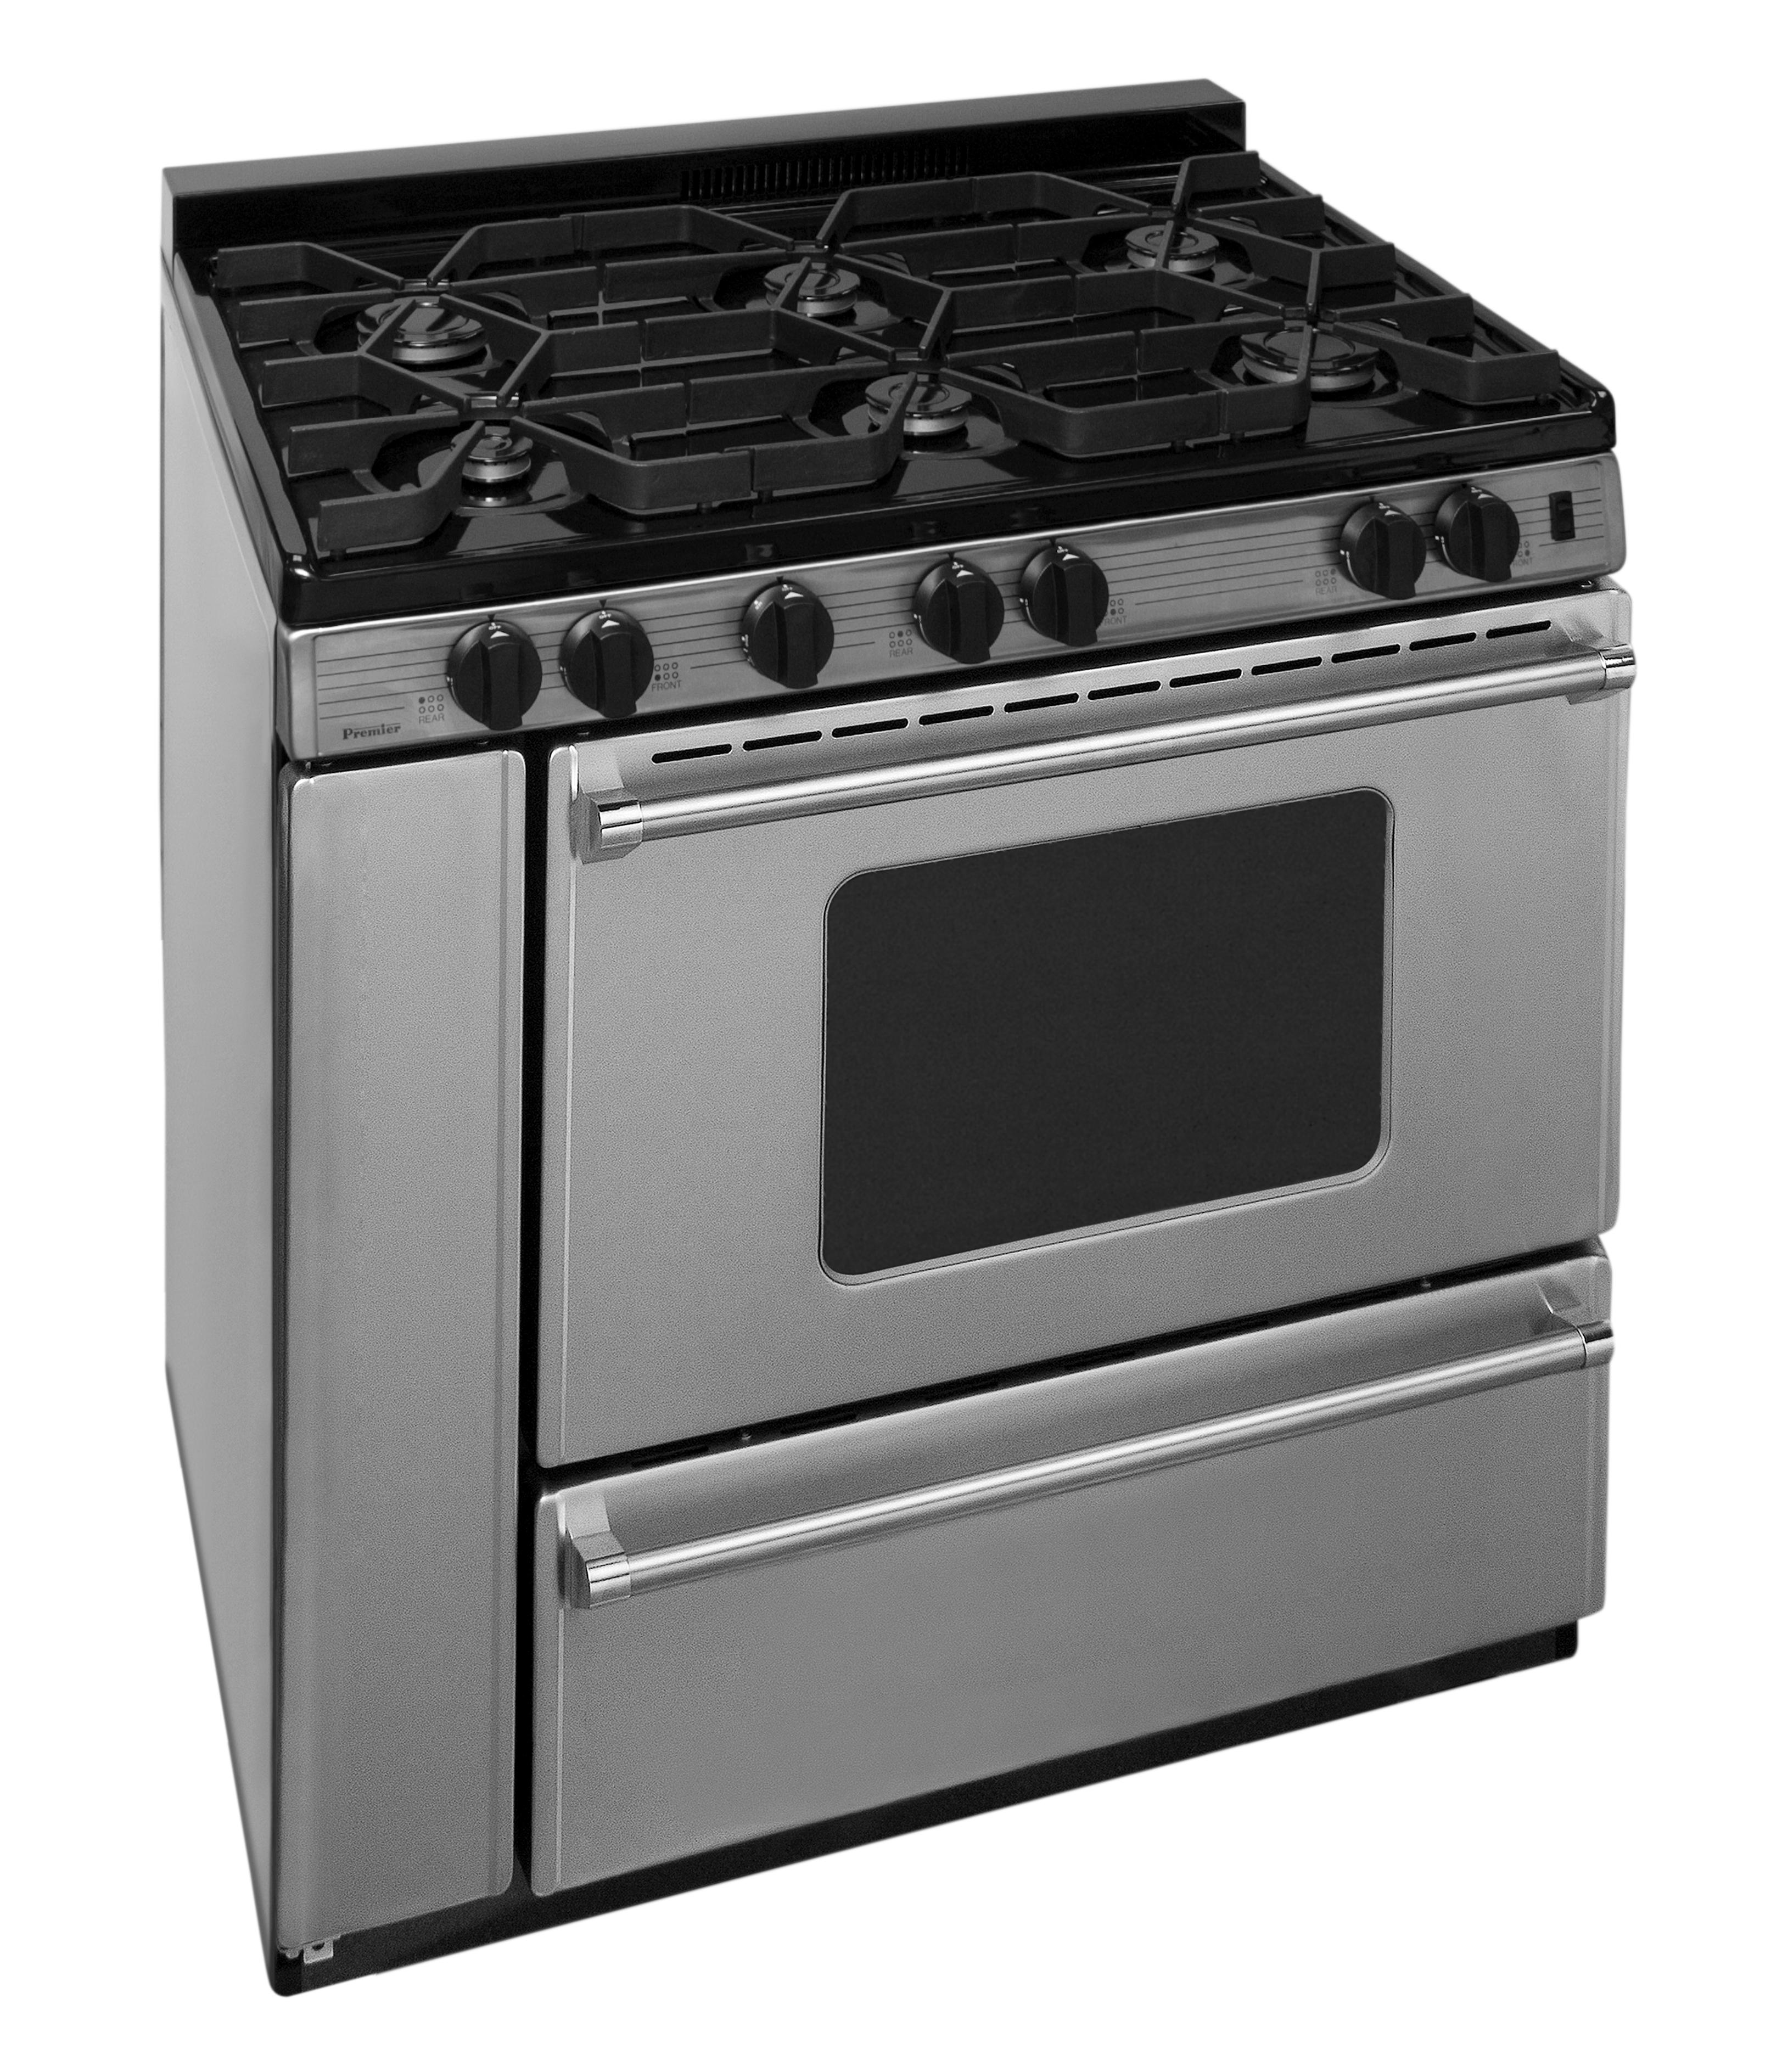 PREMIER P36B3182PS